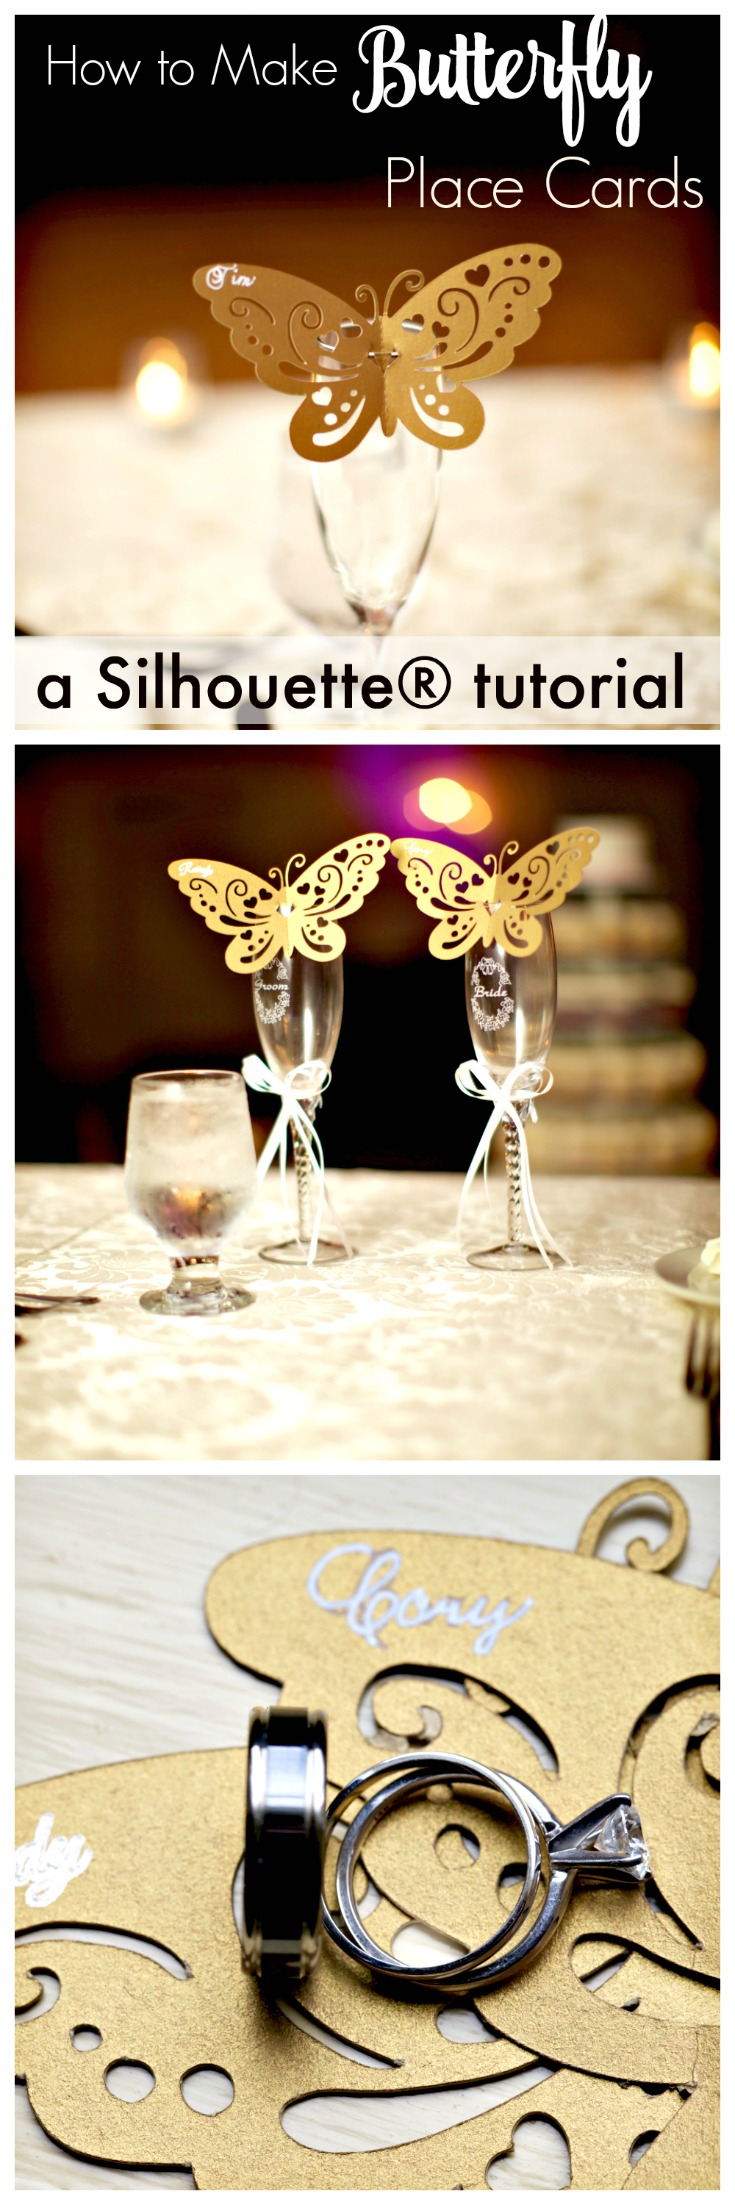 How to use your Silhouette machine to make wedding DIYs. Make these lovely butterfly place cards that perch on the rim of goblets instead of traditional and boring tent type place cards.